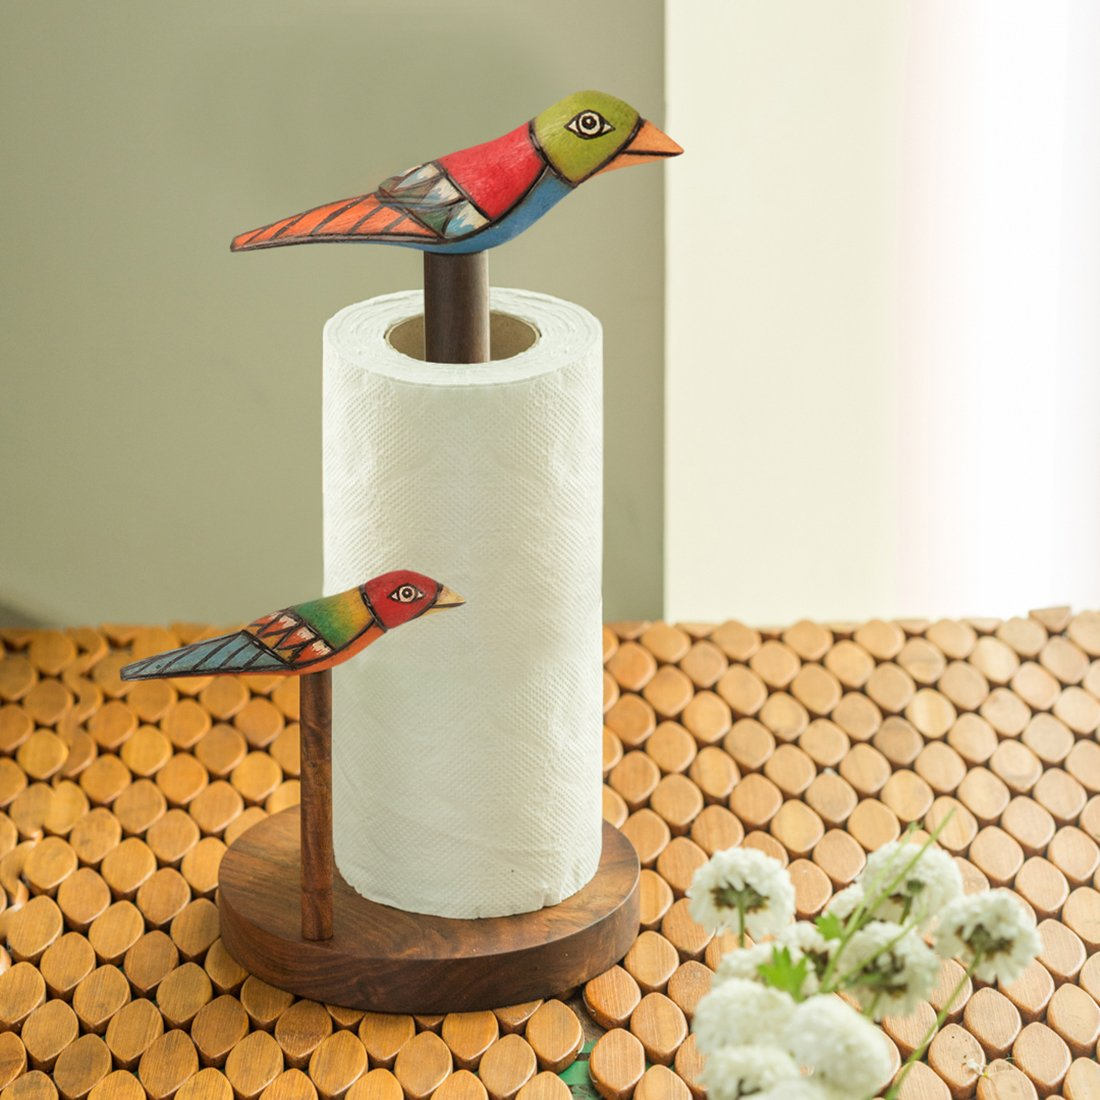 ExclusiveLane Bird Collection Brown Elegant Napkin Holder In Sheesham Wood -Napkin Rings Holder For Kitchen Table Tissue Paper Holder Stand For Table Top